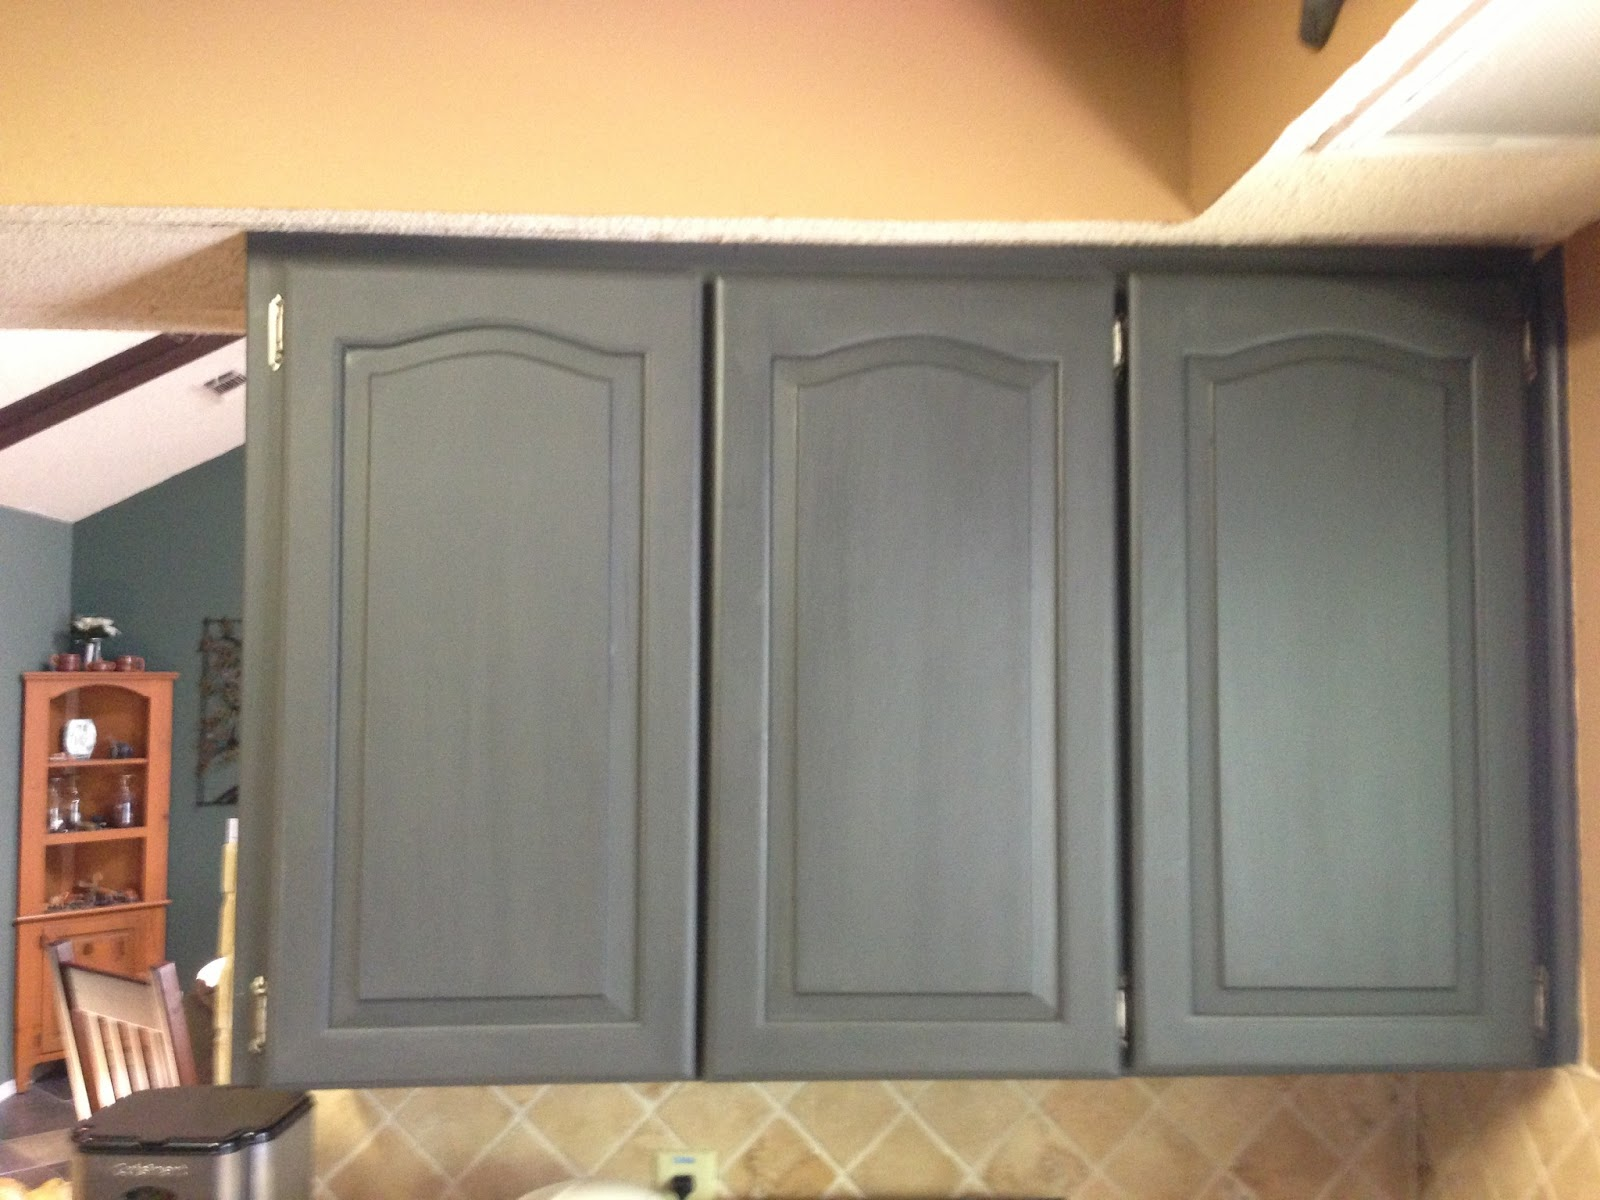 Best Paint Brush For Painting Kitchen Cabinets